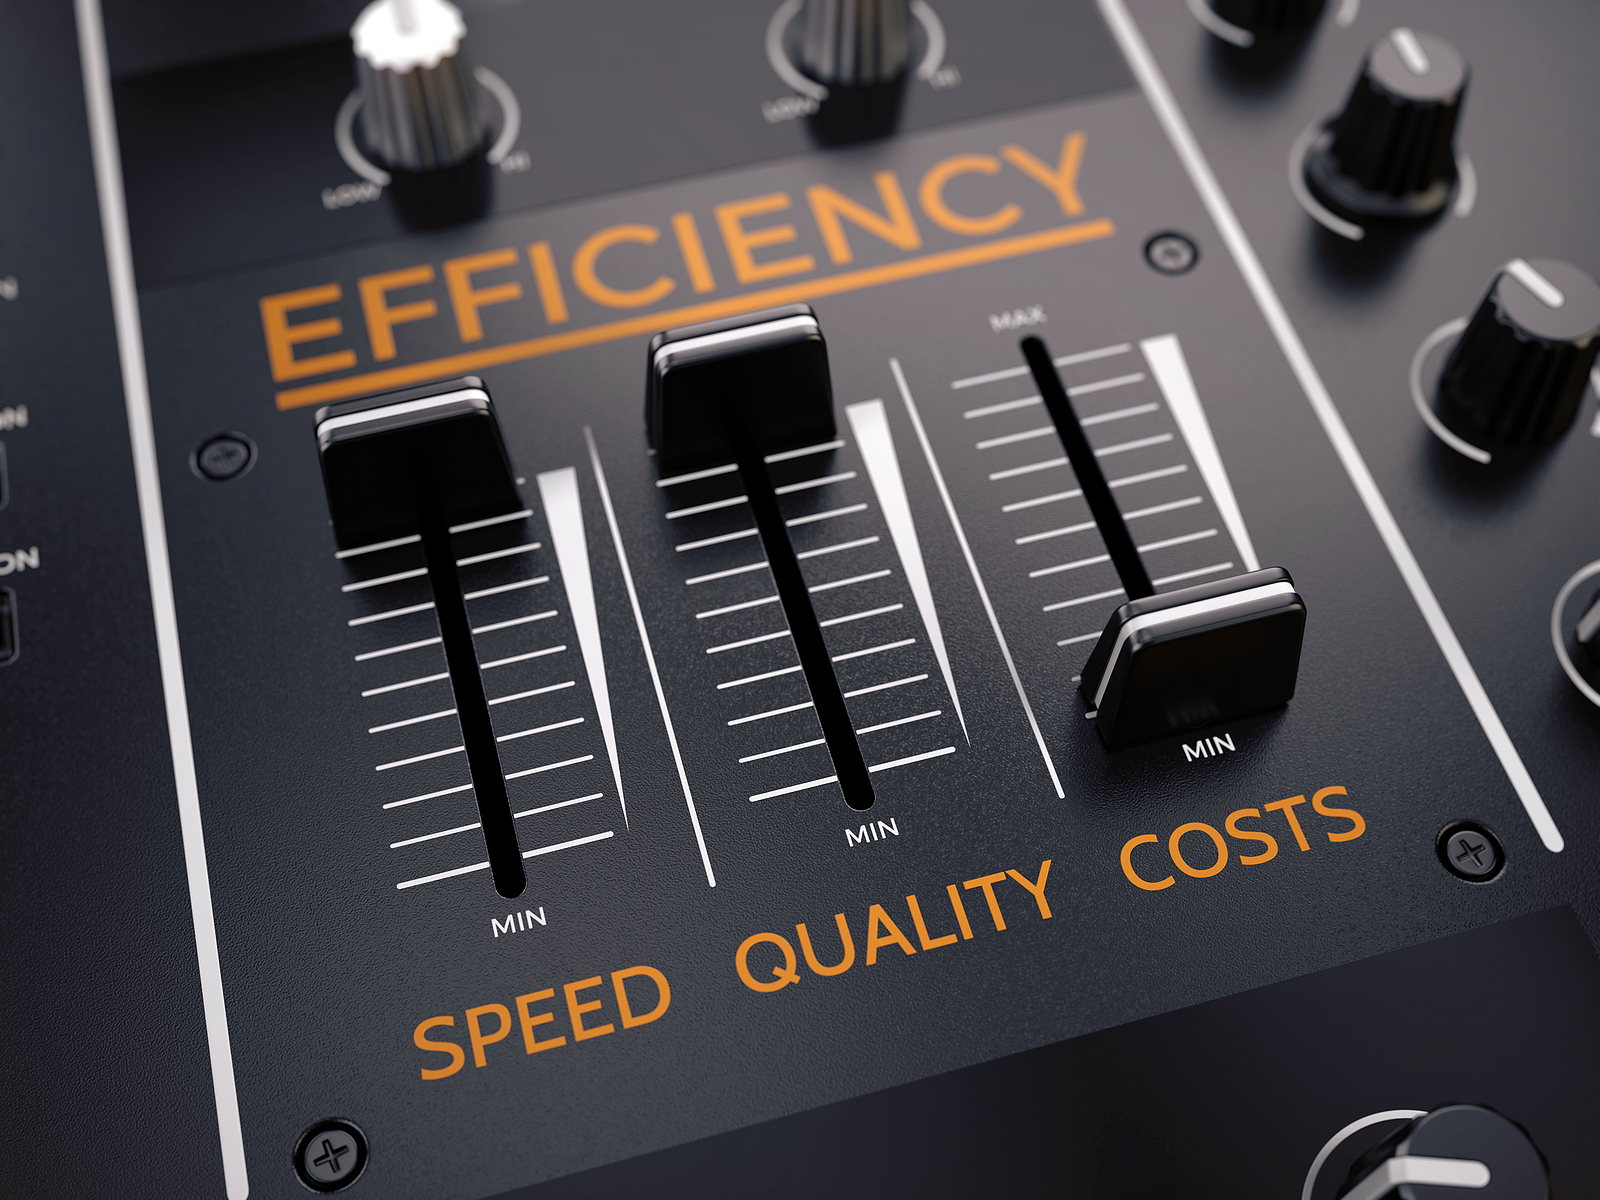 High efficiency and minimum costs